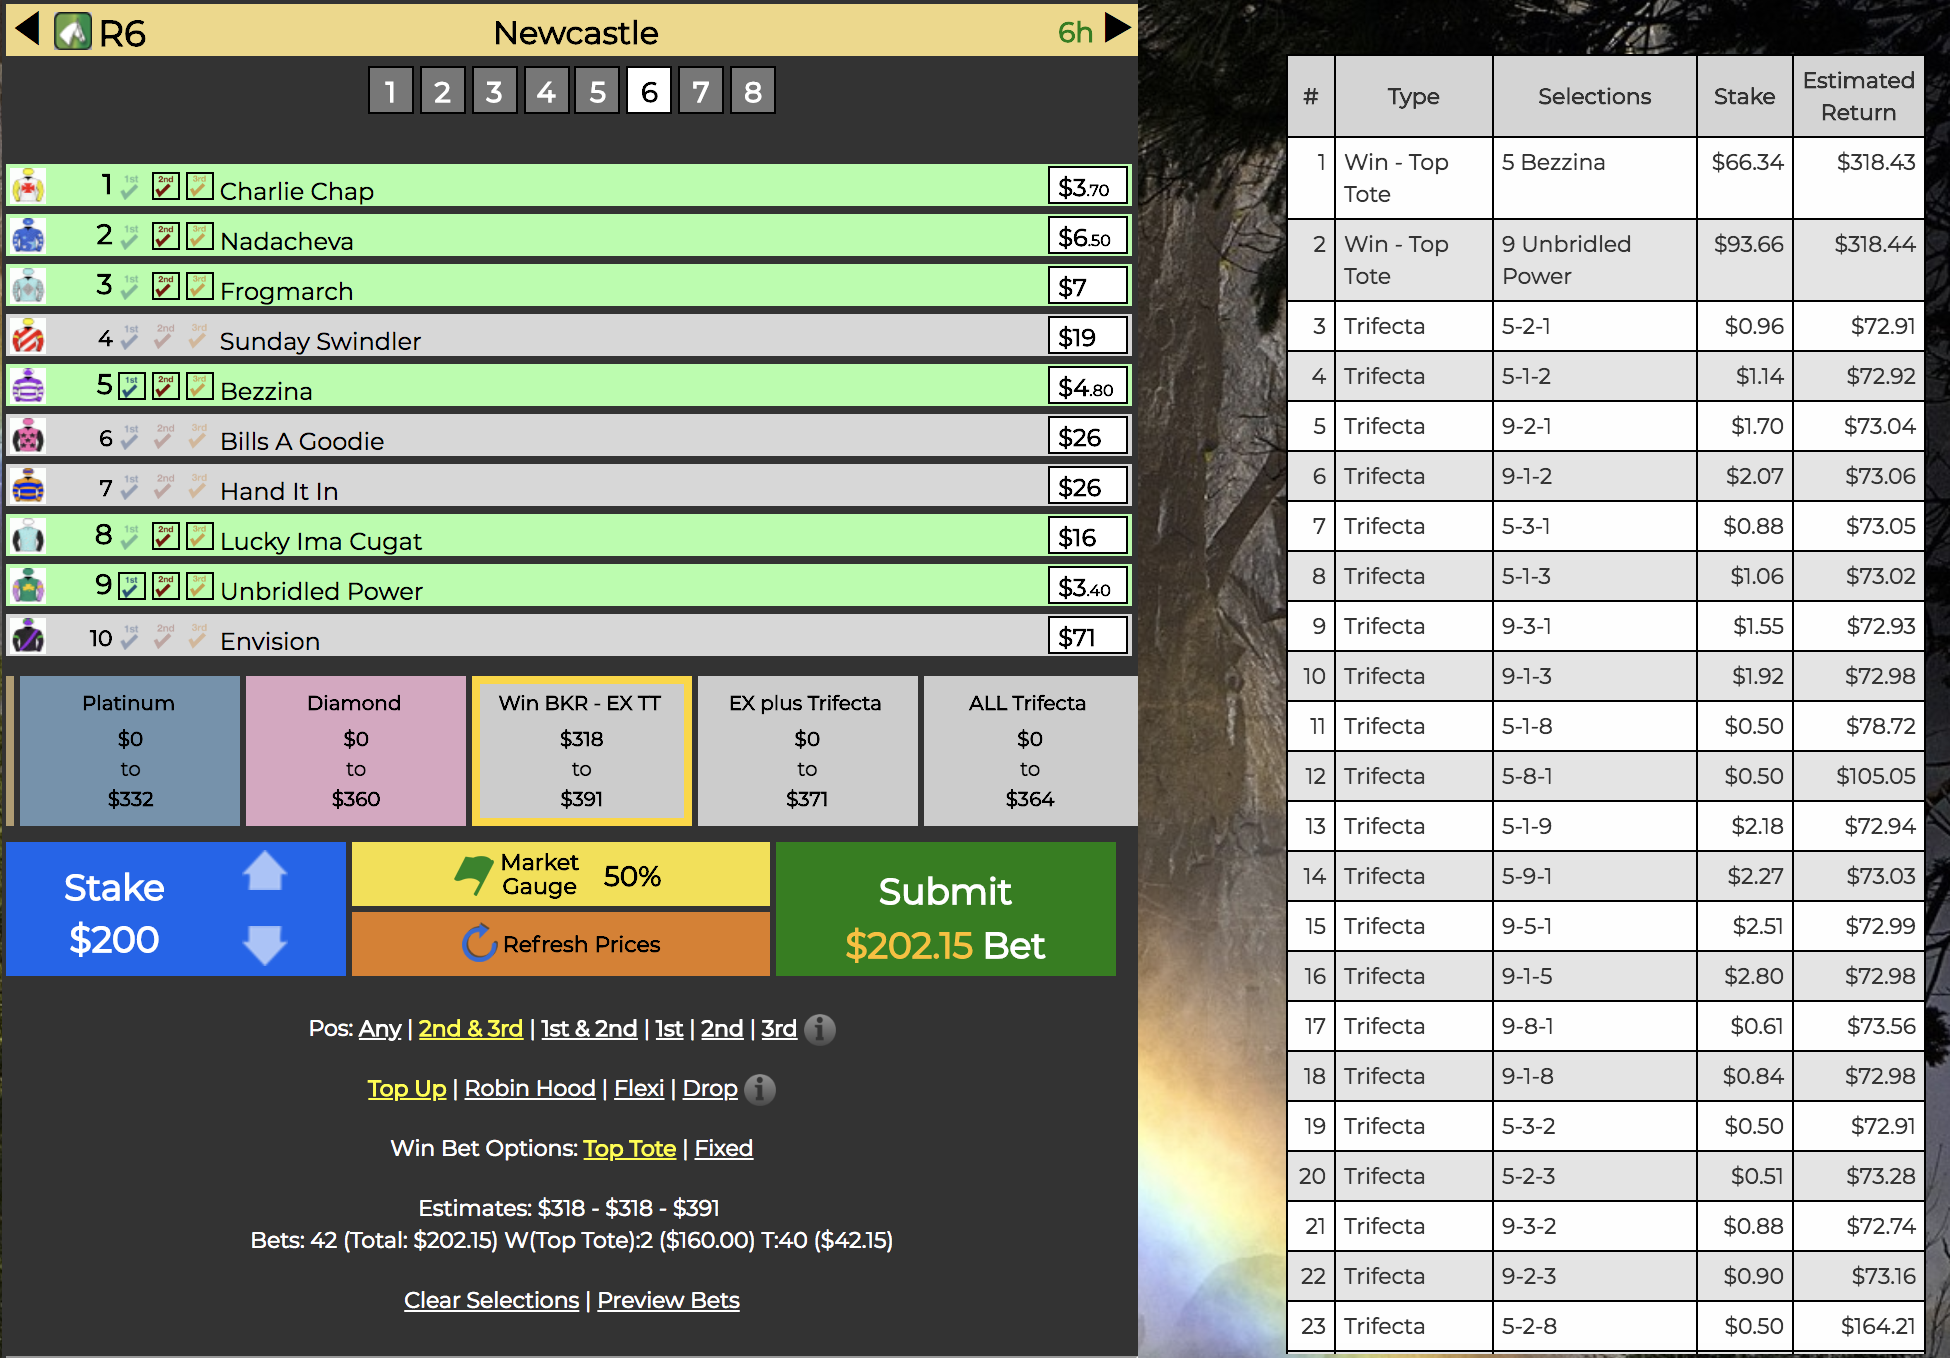 Newcastle R6  - Two selections #5 #9 from 1 2 3 8 for $200 Win / Ex / TT Custom Level.  These two look great chances here, although I note there's been some market movement in the hour since I took this screen shot.  Result: 7-2-3. No good for us here, although our two main selections looked good into the straight.  Outlay: $202.15. Return: NIL. Loss: $202.15.